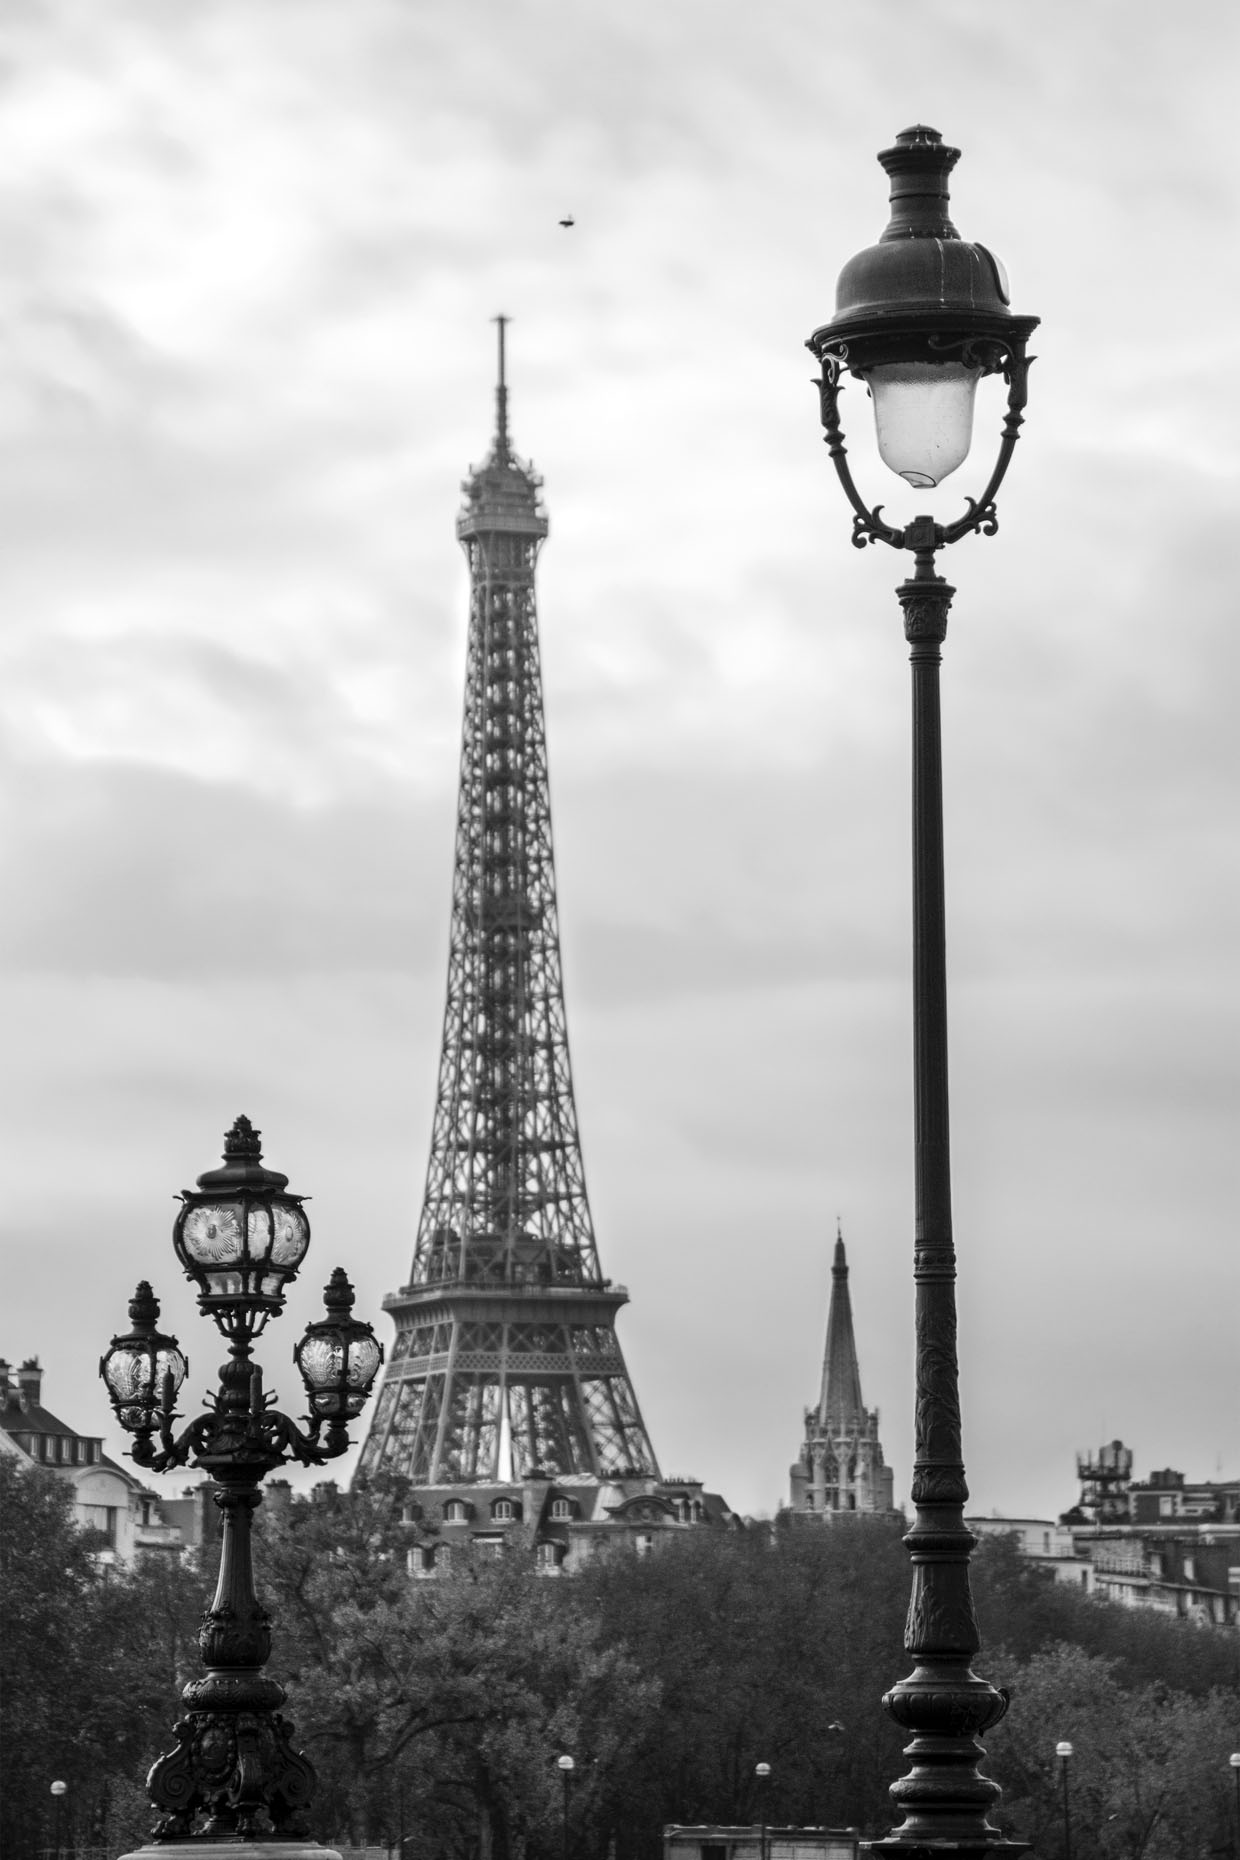 France_Paris_Eiffel_bridge_02-bw_webuse.jpg